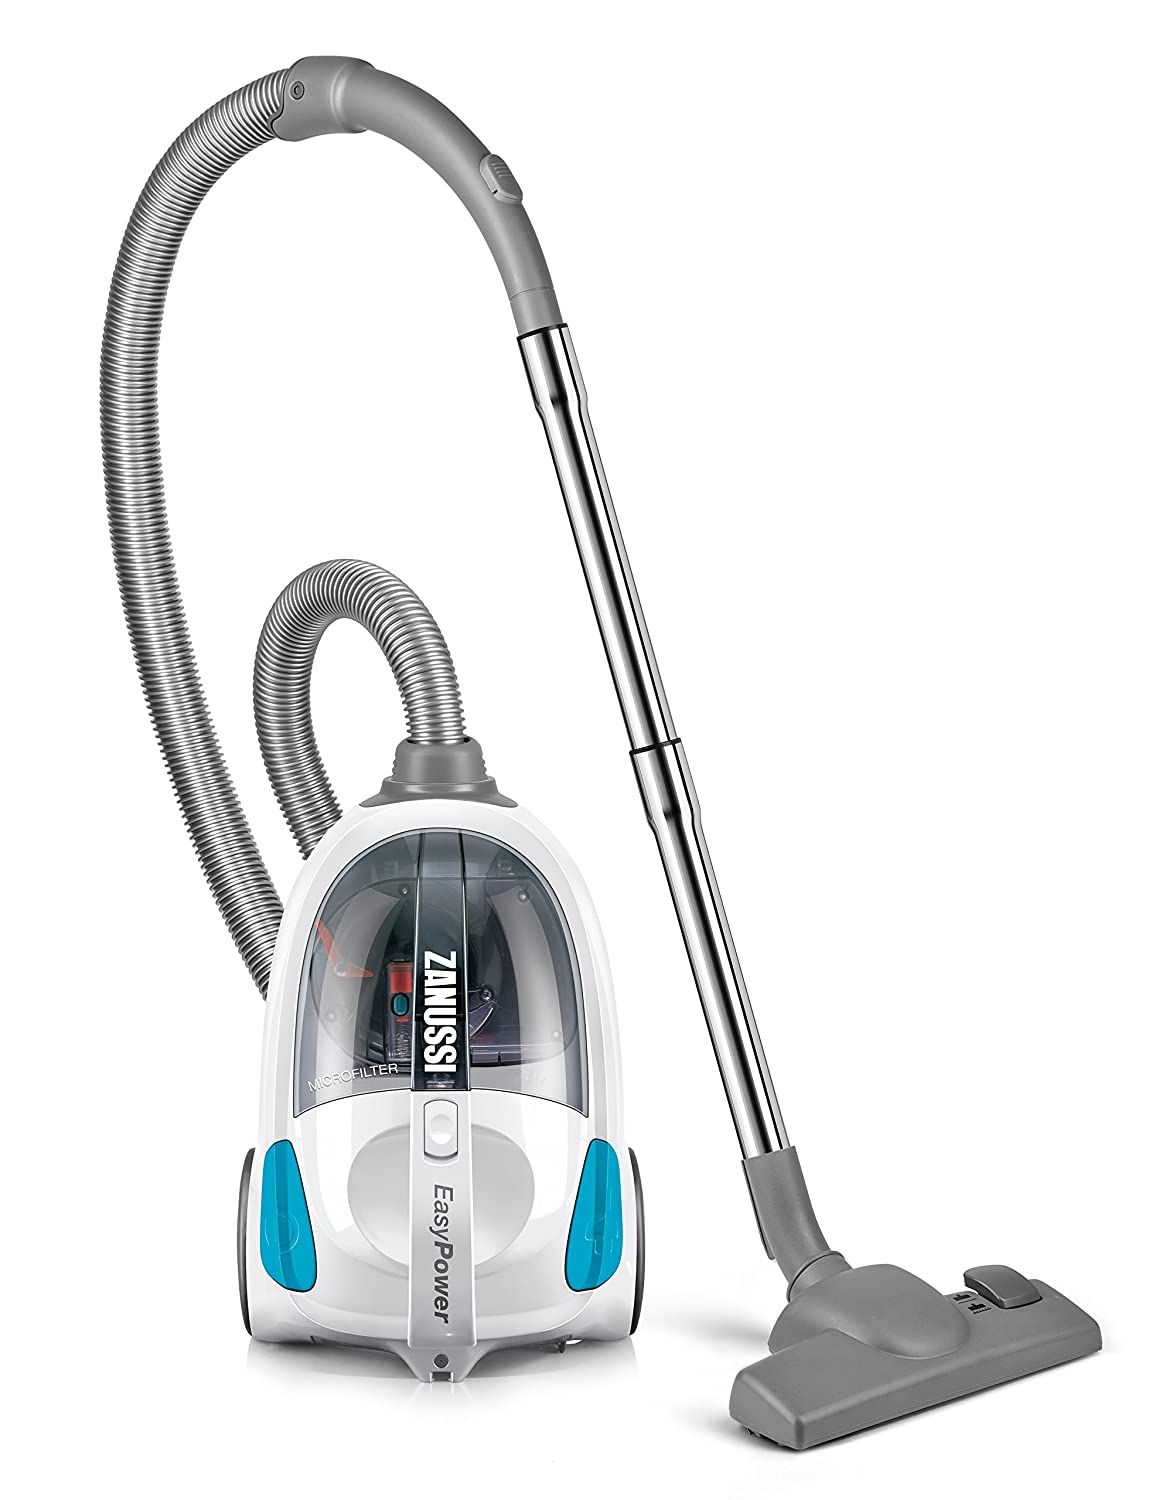 10 Best Bagless Canister Vacuum Cleaners For Pet Hair 2016